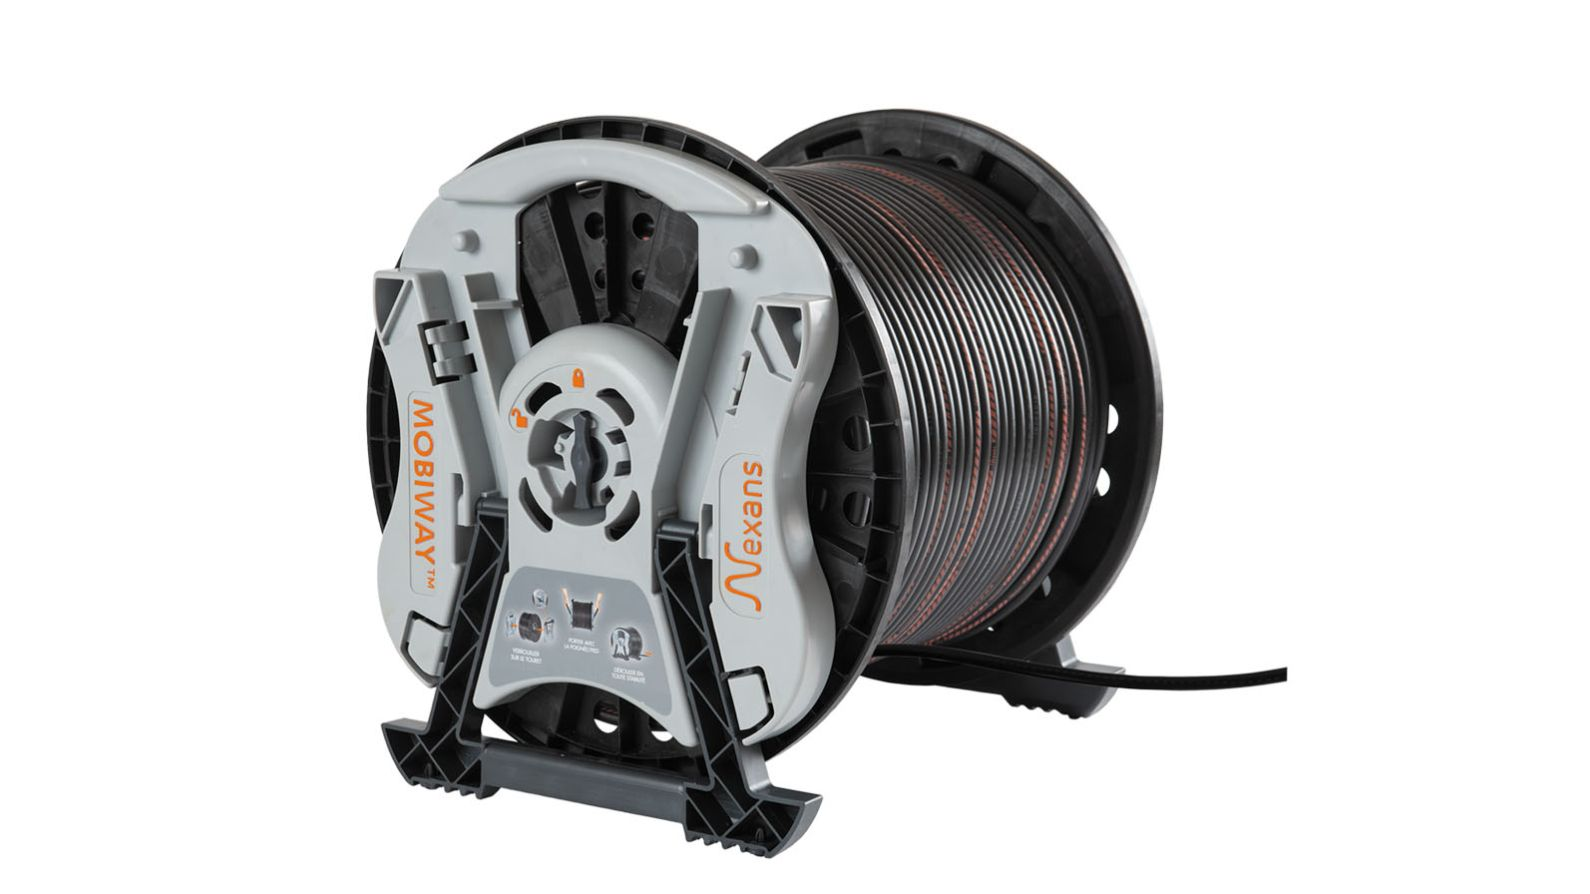 MOBIWAY™ BY NEXANS - Reusable system allowing for easy carrying and unwinding of your cable drums